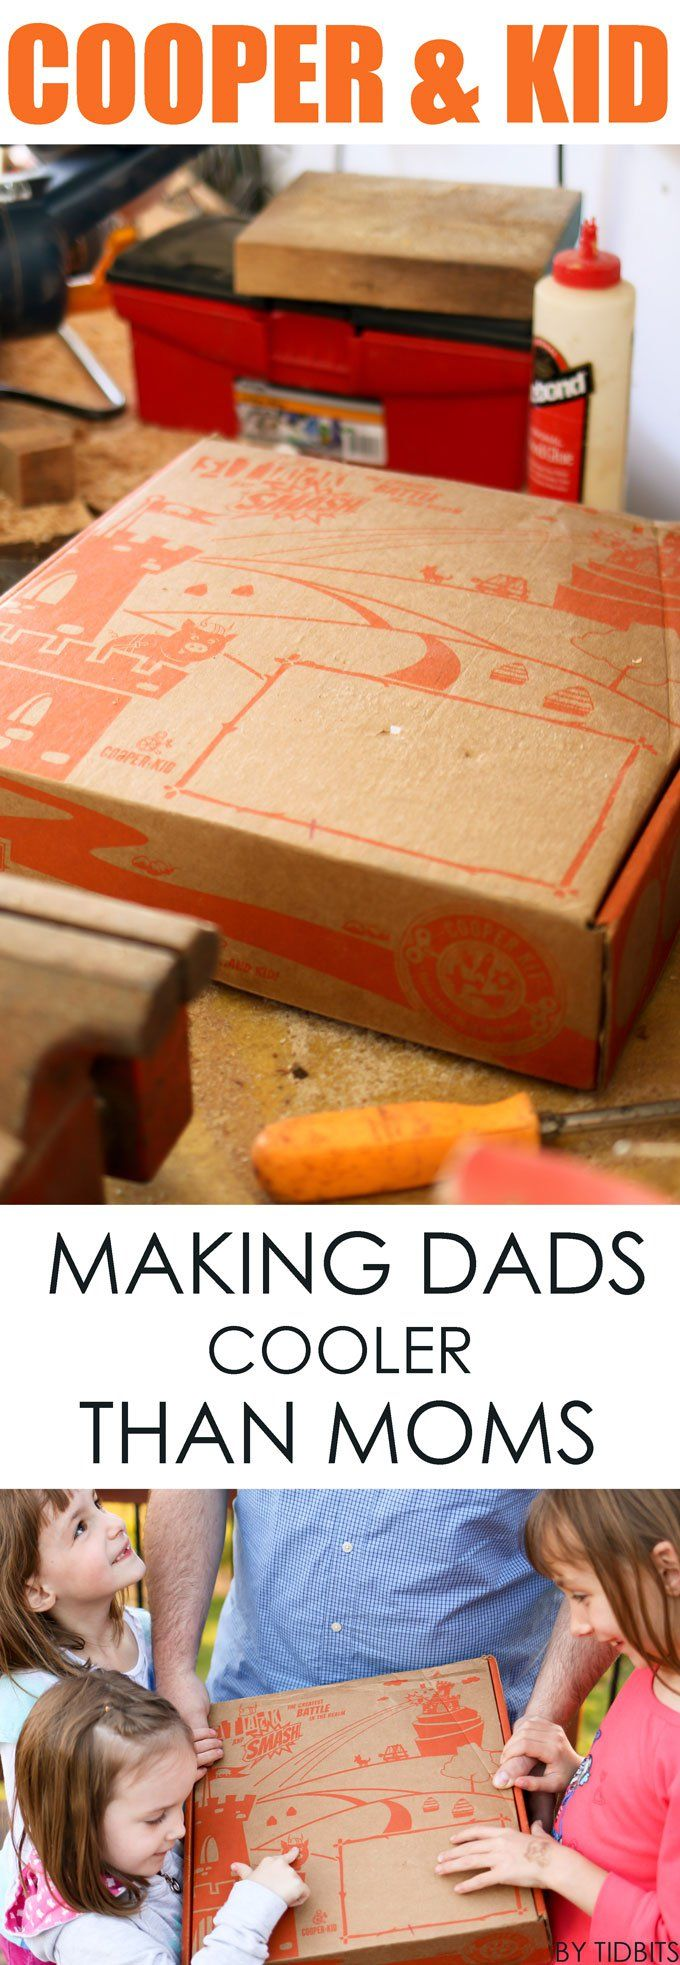 Cooper and Kid, subscription box for kids and their Dads!